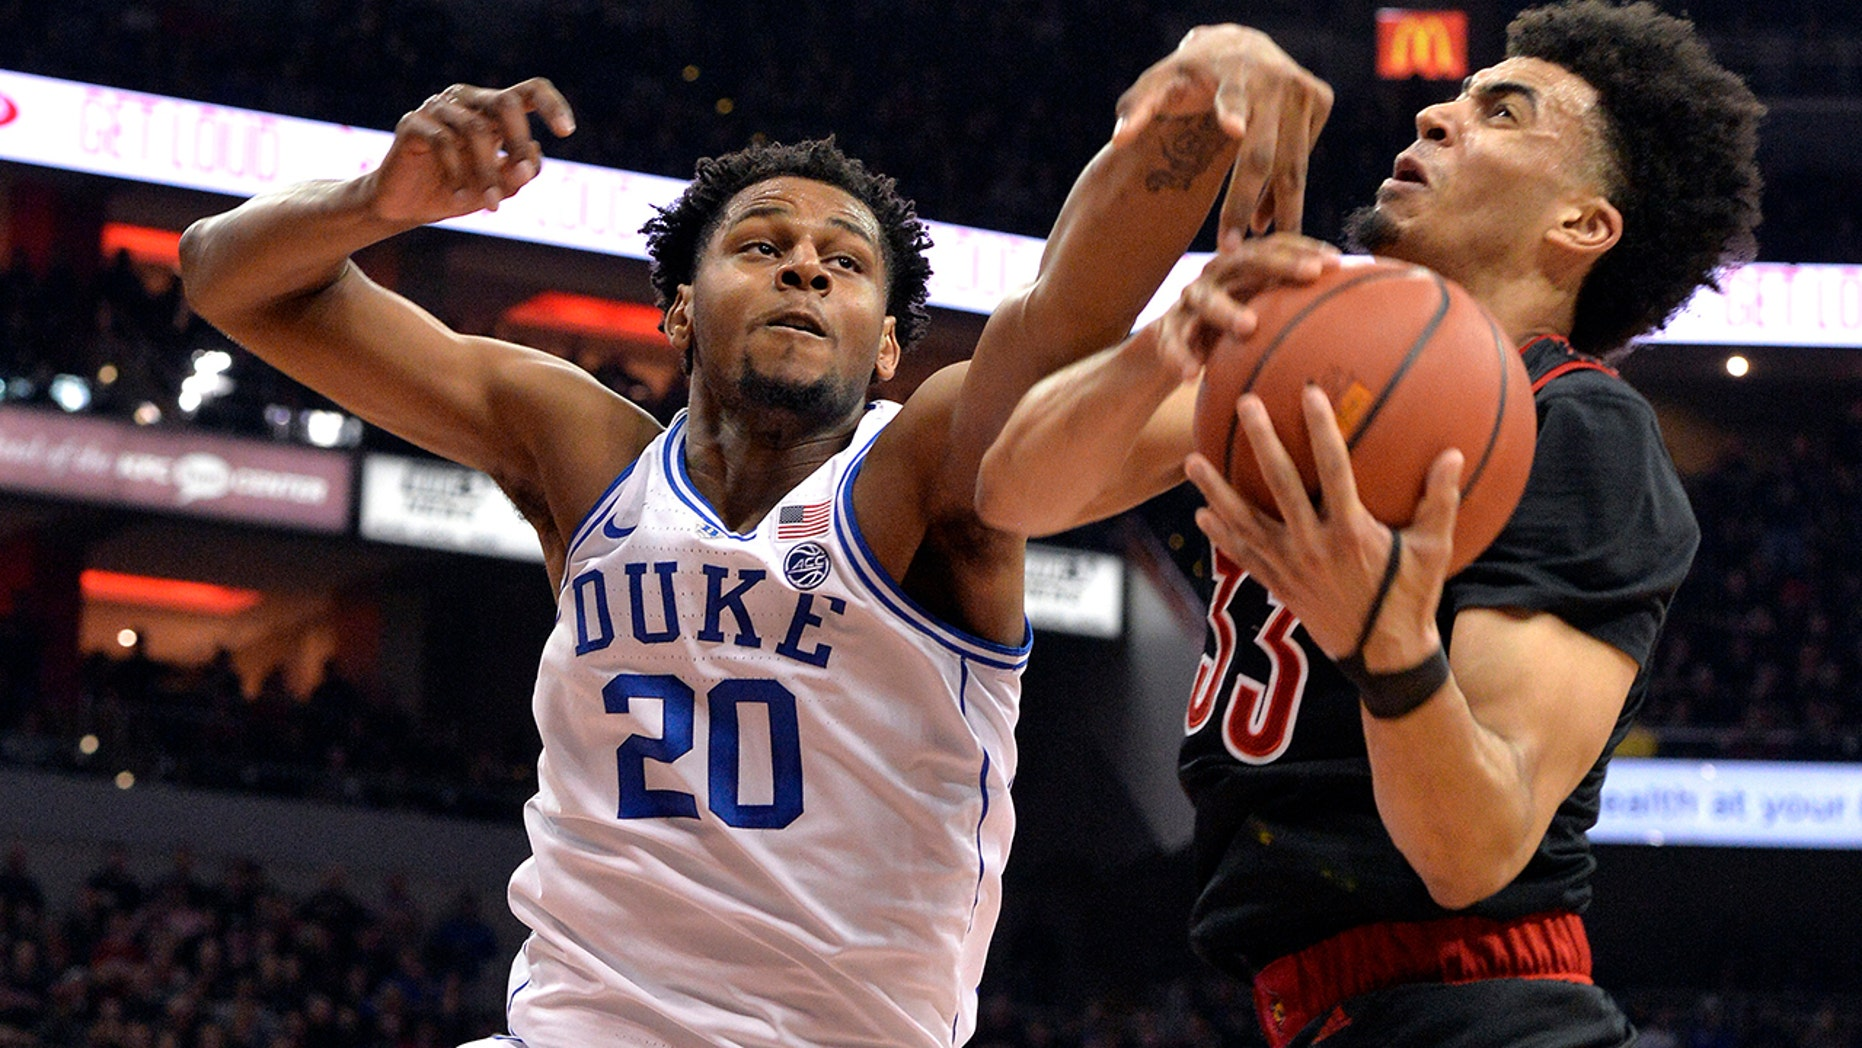 Duke center Marques Bolden (20) and Louisville forward Jordan Nwora (33) vie for a rebound during the first half of an NCAA college basketball game in Louisville, Ky., Tuesday, Feb. 12, 2019. (Associated Press)